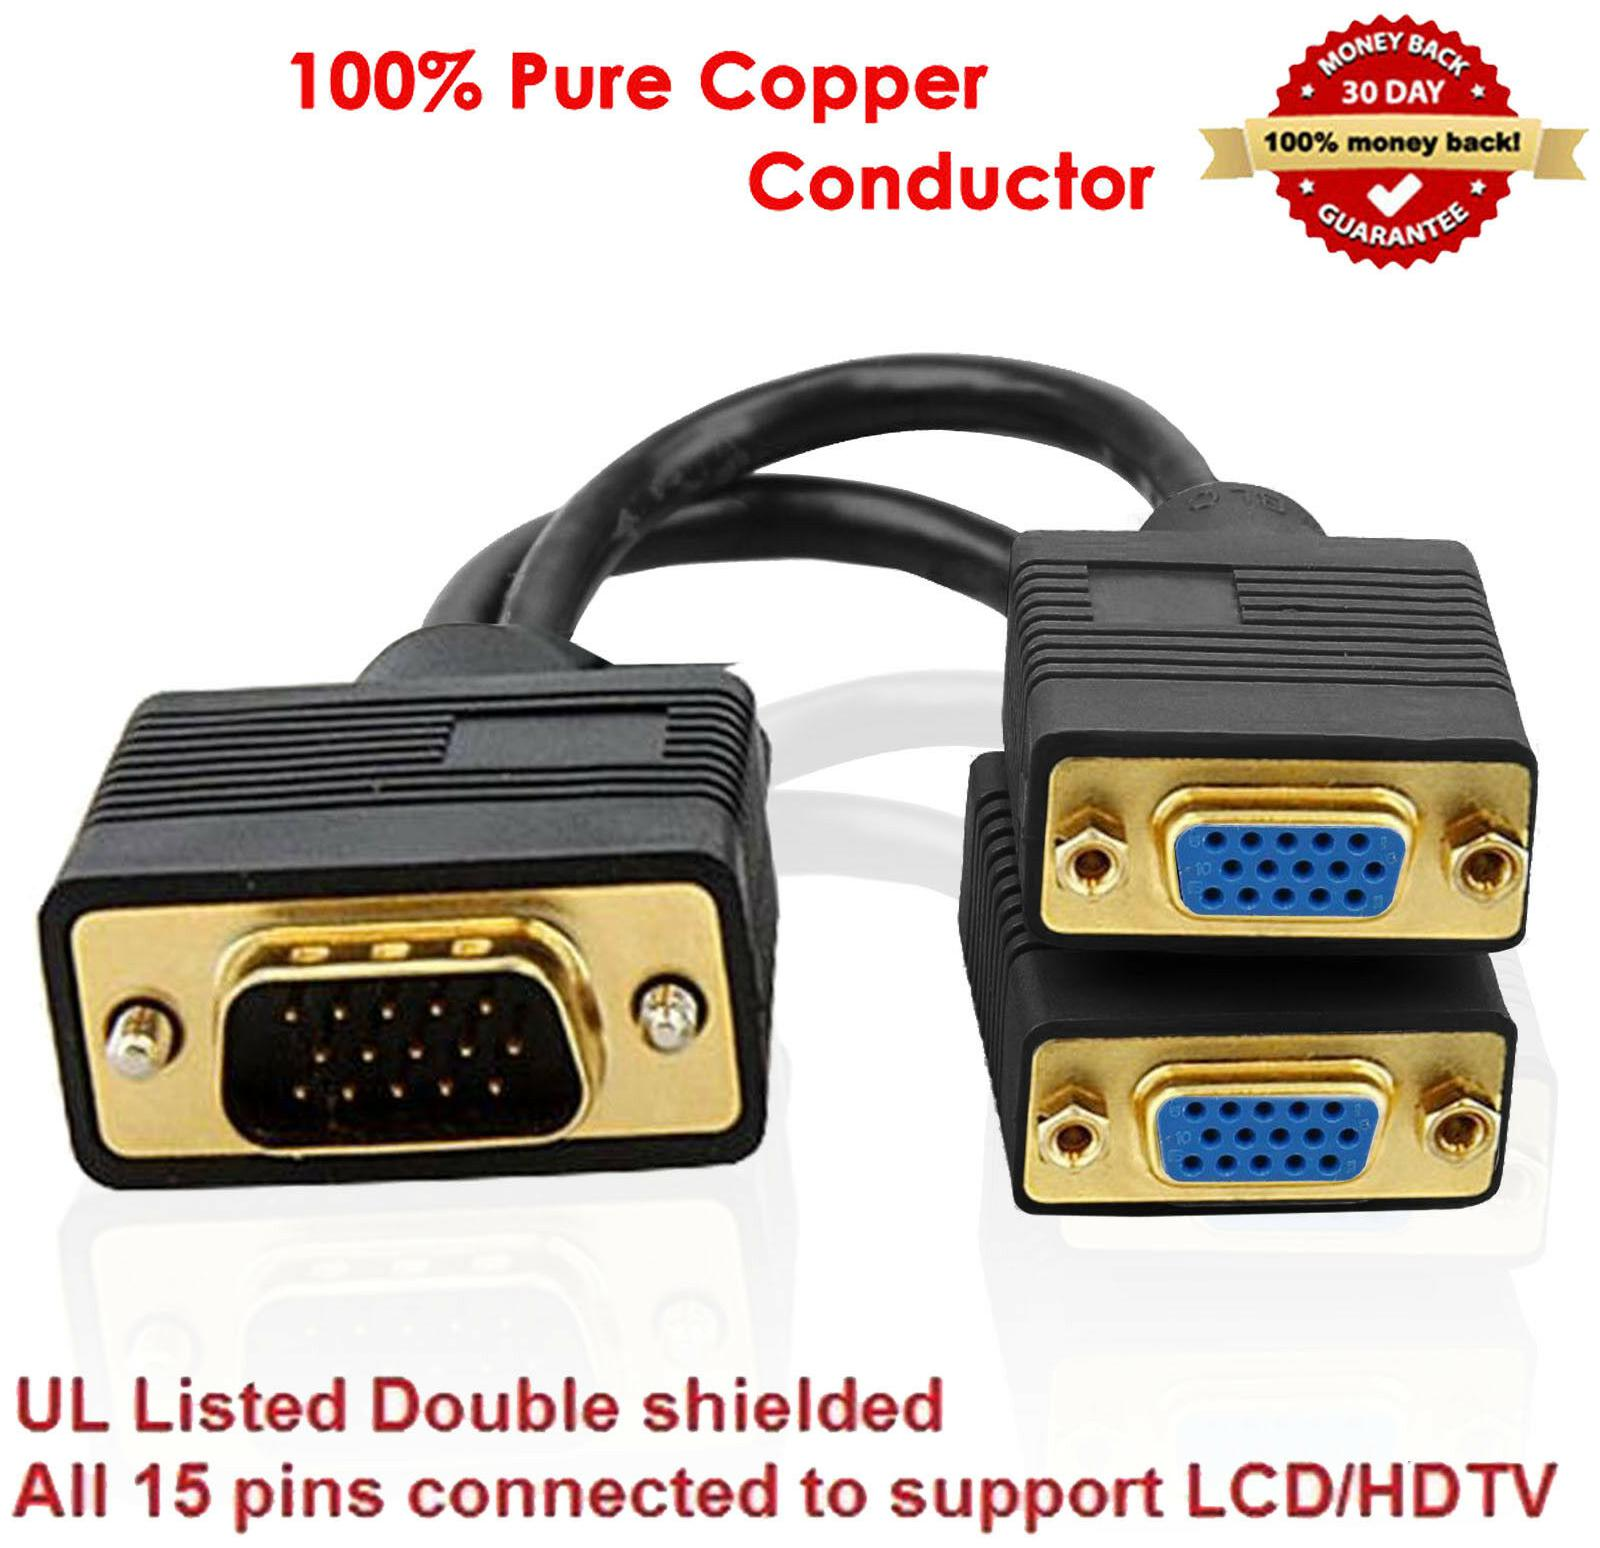 VGA 1 Male to Dual 2 VGA Female Converter Adapter Splitter Y Cable Gold Plated